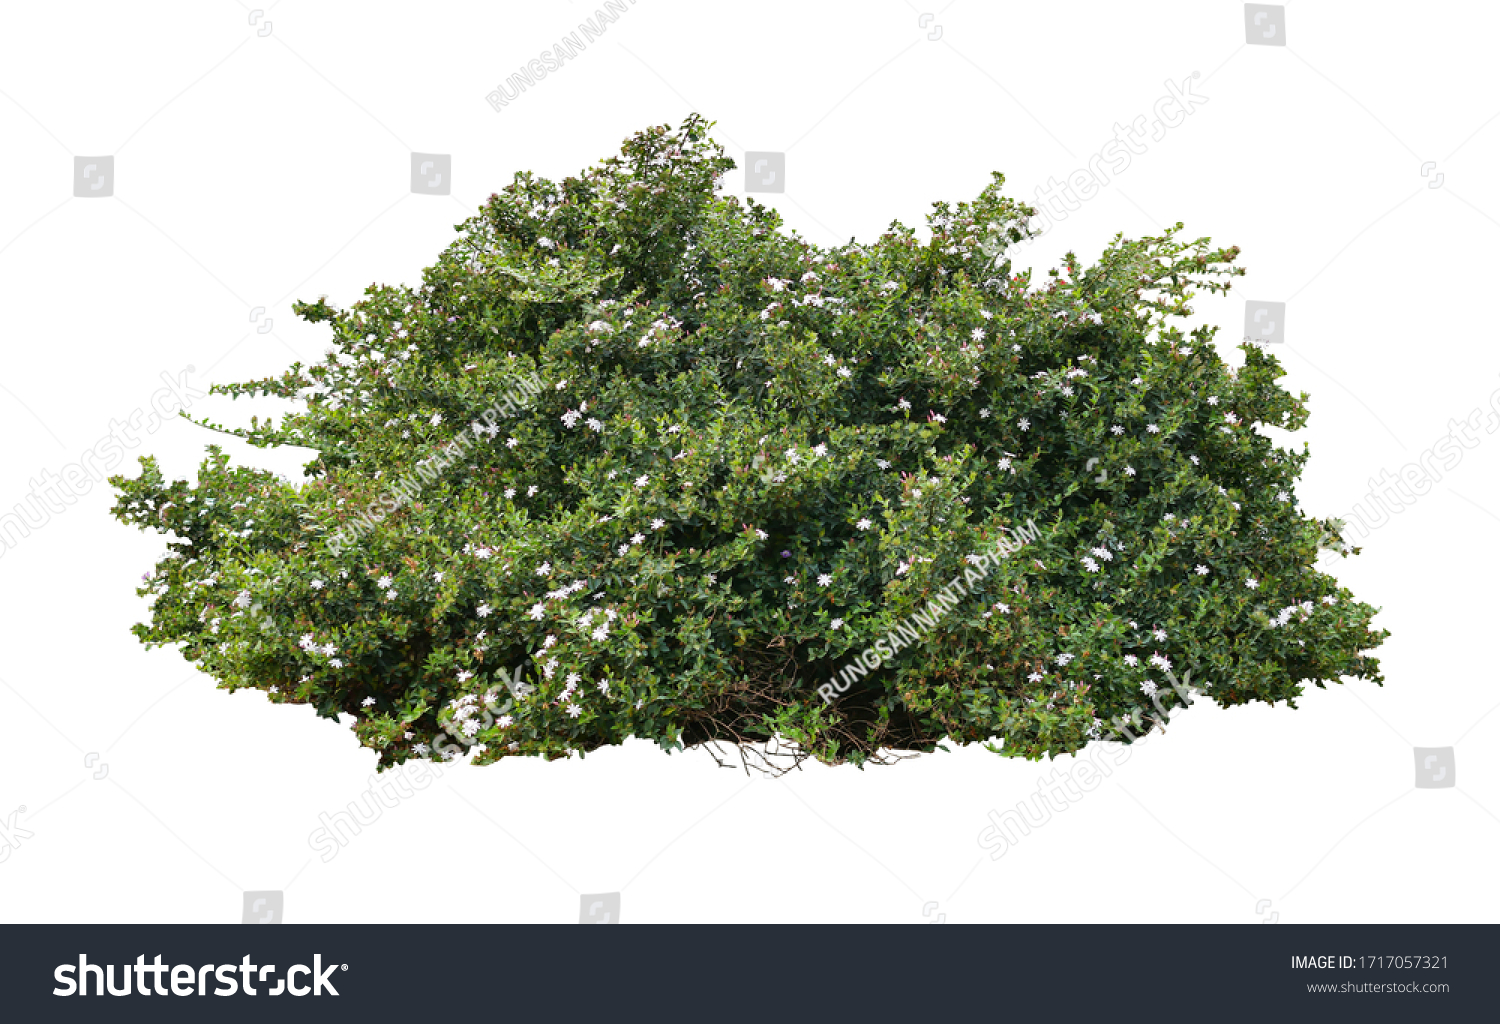 Tropical plant flower bush tree isolated on white background with clipping path #1717057321